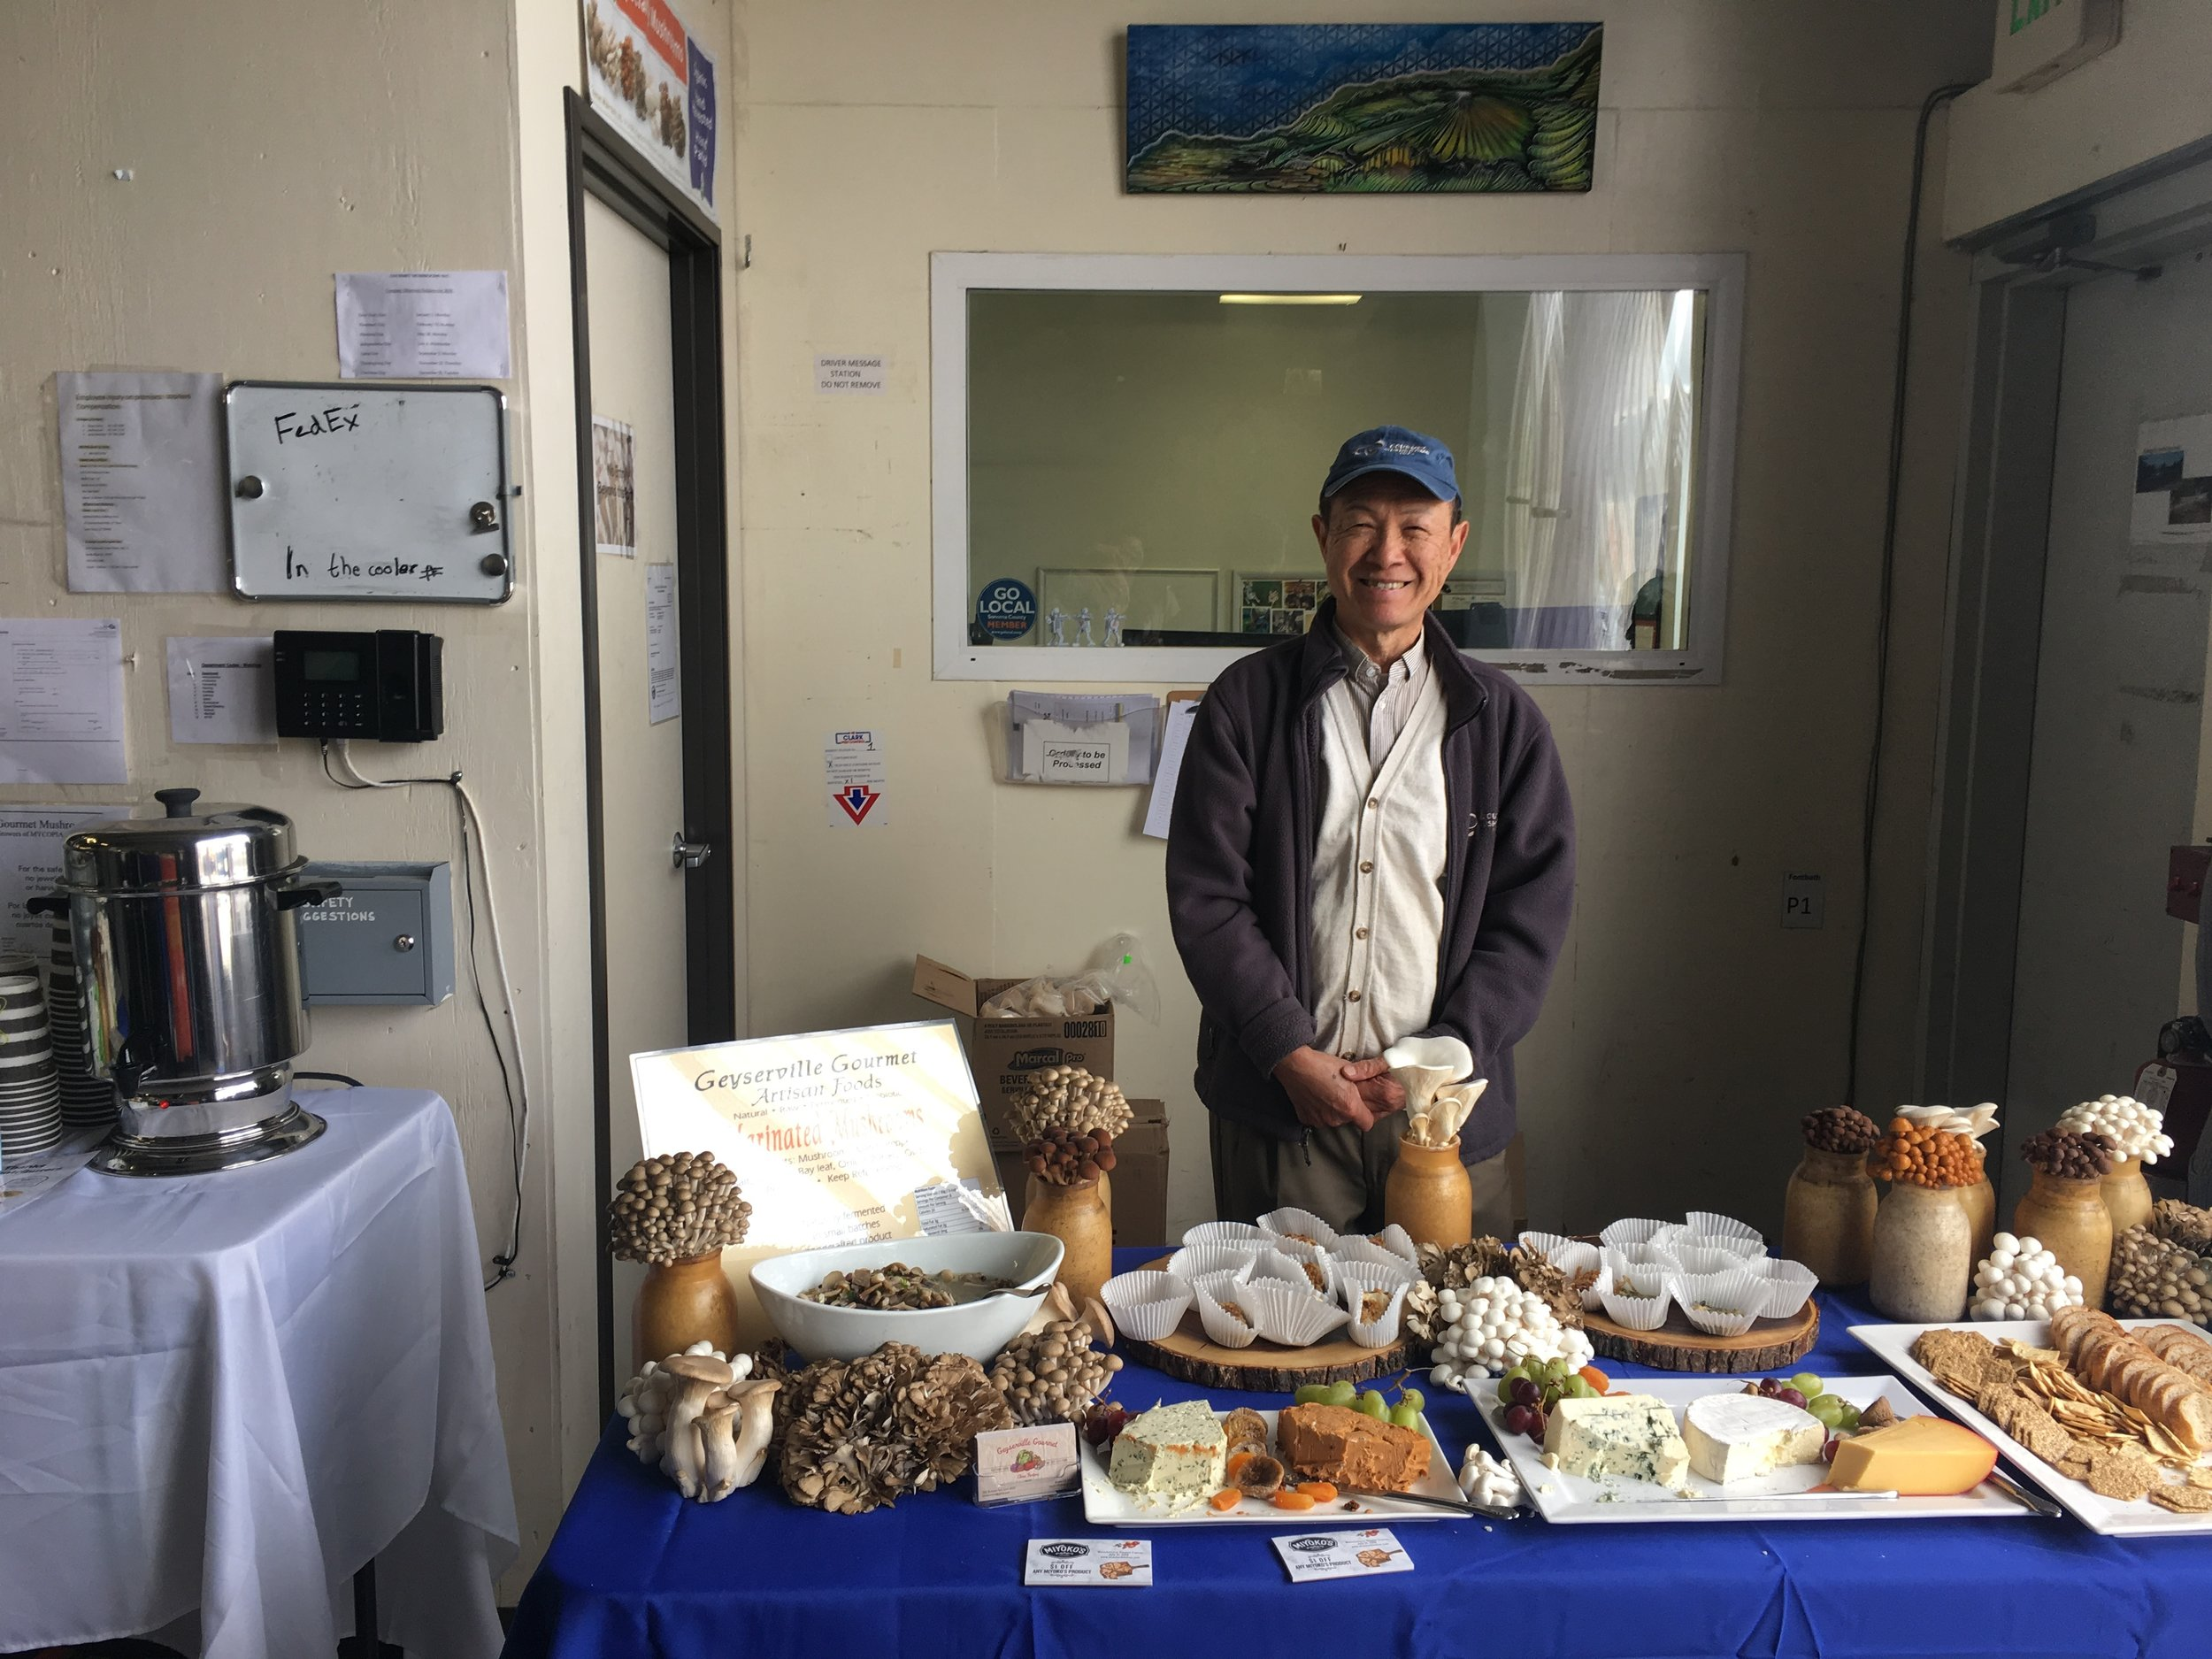 Richard, who has been with the farm for its entire history, presides over a gourmet spread